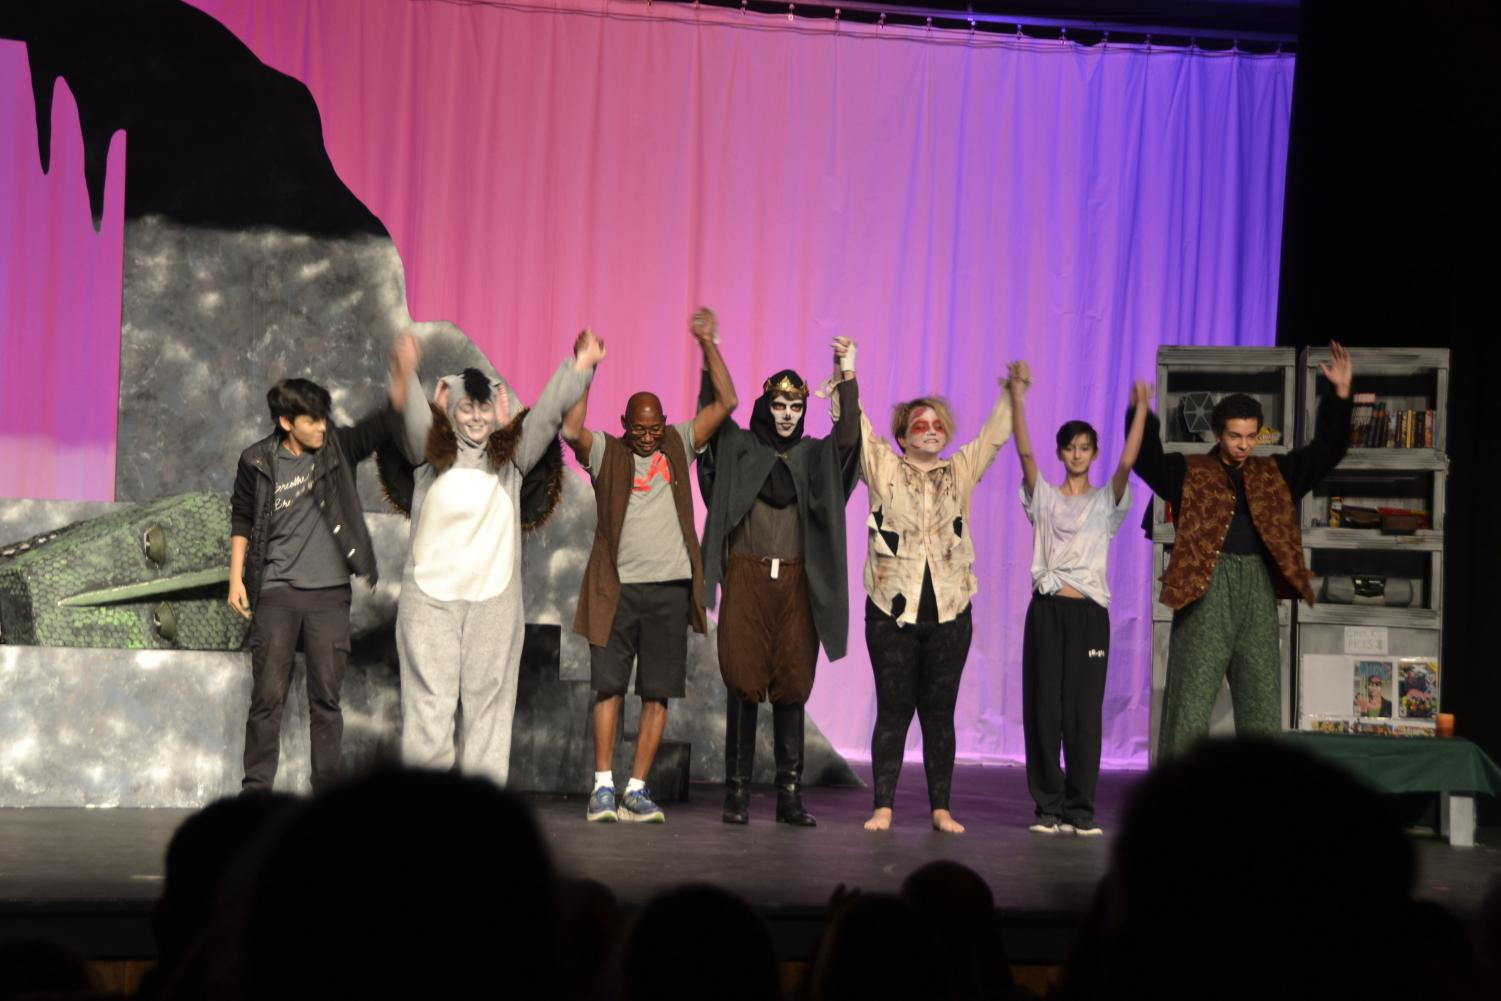 The+first+group+of+the+cast+comes+out%2C+signifying+the+ending+of+an+amazing+show.